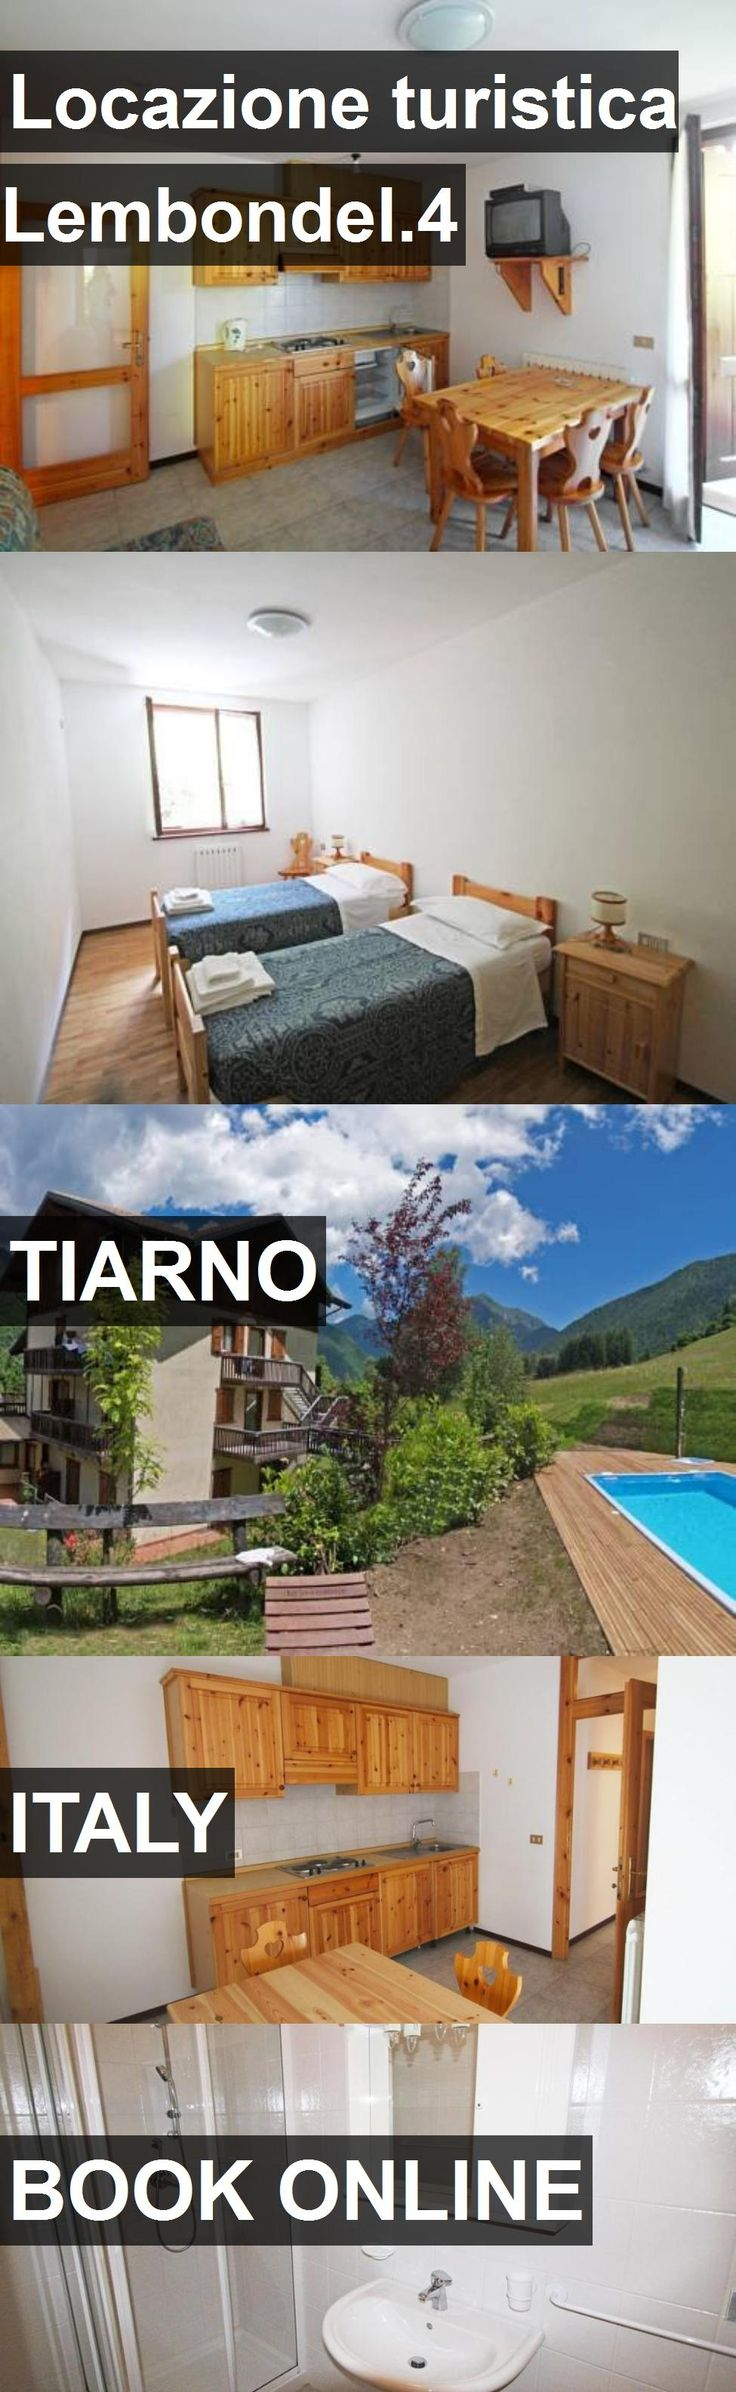 Hotel Locazione turistica Lembondel.4 in Tiarno, Italy. For more information, photos, reviews and best prices please follow the link. #Italy #Tiarno #travel #vacation #hotel